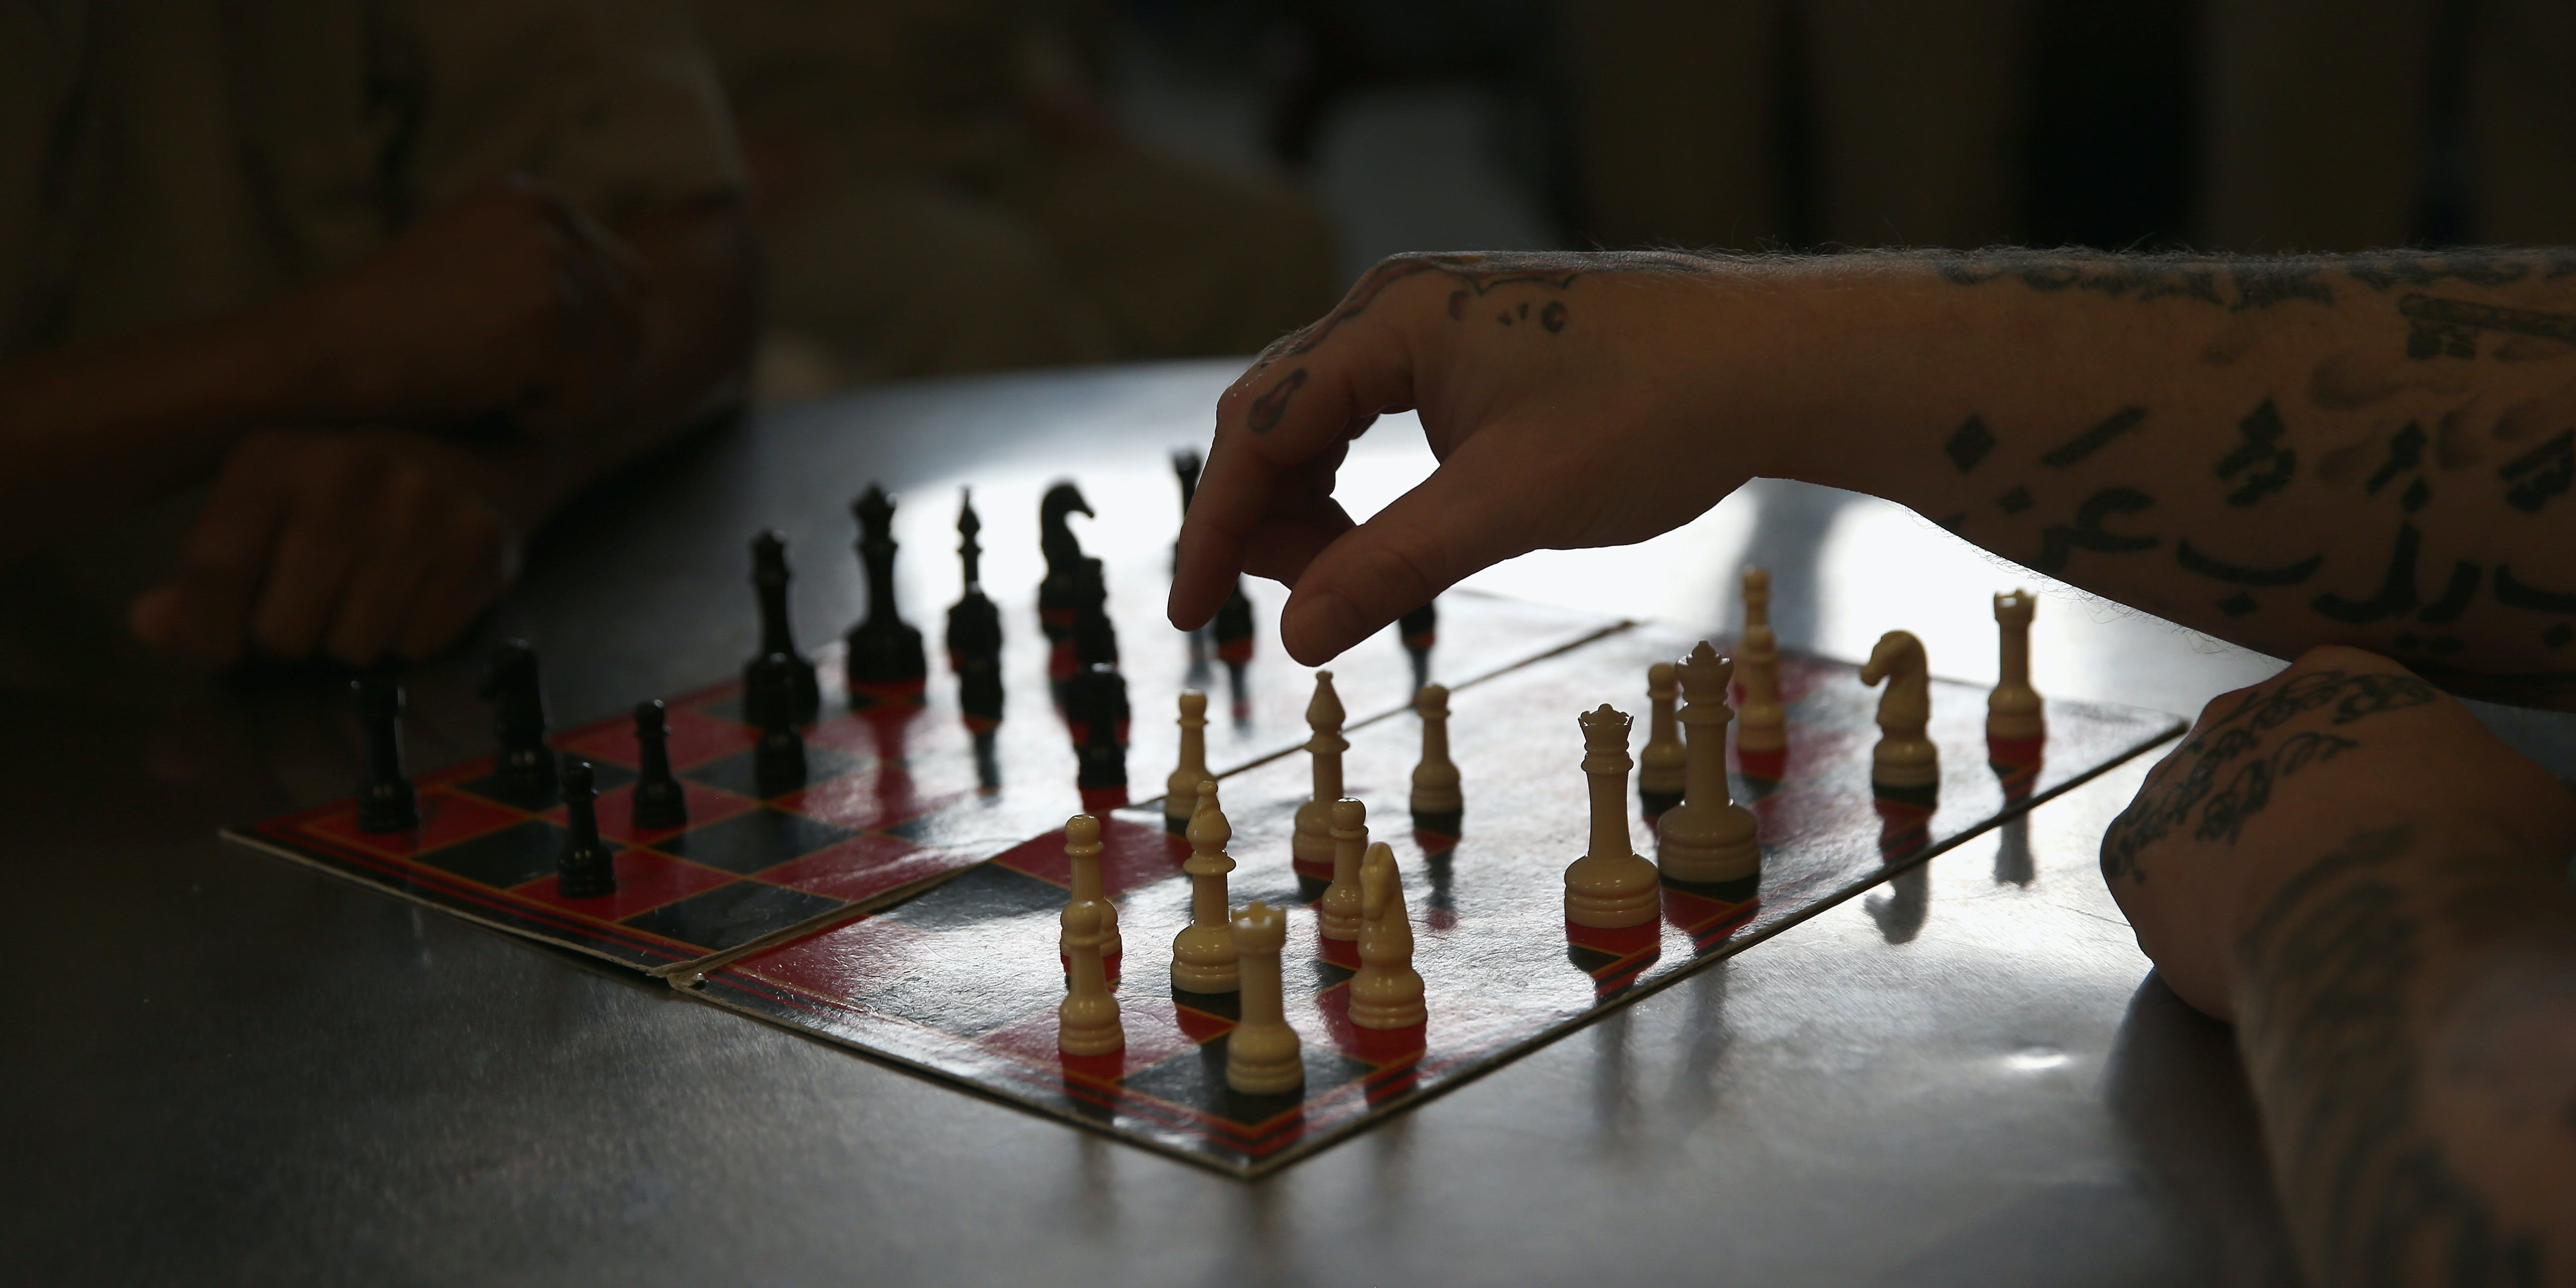 ENFIELD, CT - MAY 03:  Inmates play chess at the military Veterans Unit of the Cybulski Rehabilitation Center on May 3, 2016 in Enfield, Connecticut. The Veterans Unit houses some 110 prisoners, all U.S. military veterans convicted of crimes ranging from petty larceny to murder. Inmates at the center typically have less than two years left on their sentences. The unit is part of a Connecticut Department of Correction program to turn some prisons into reintegration centers to prepare inmates for successful re-entry into society. Criminal justice and prison reforms are taking hold with bi-partisan support nationwide in an effort to reduce prison populations and recidivism. The state's criminal justice reforms fall under Connecticut Governor Dannel Malloy's 'Second Chance Society' legislation.  (Photo by John Moore/Getty Images)